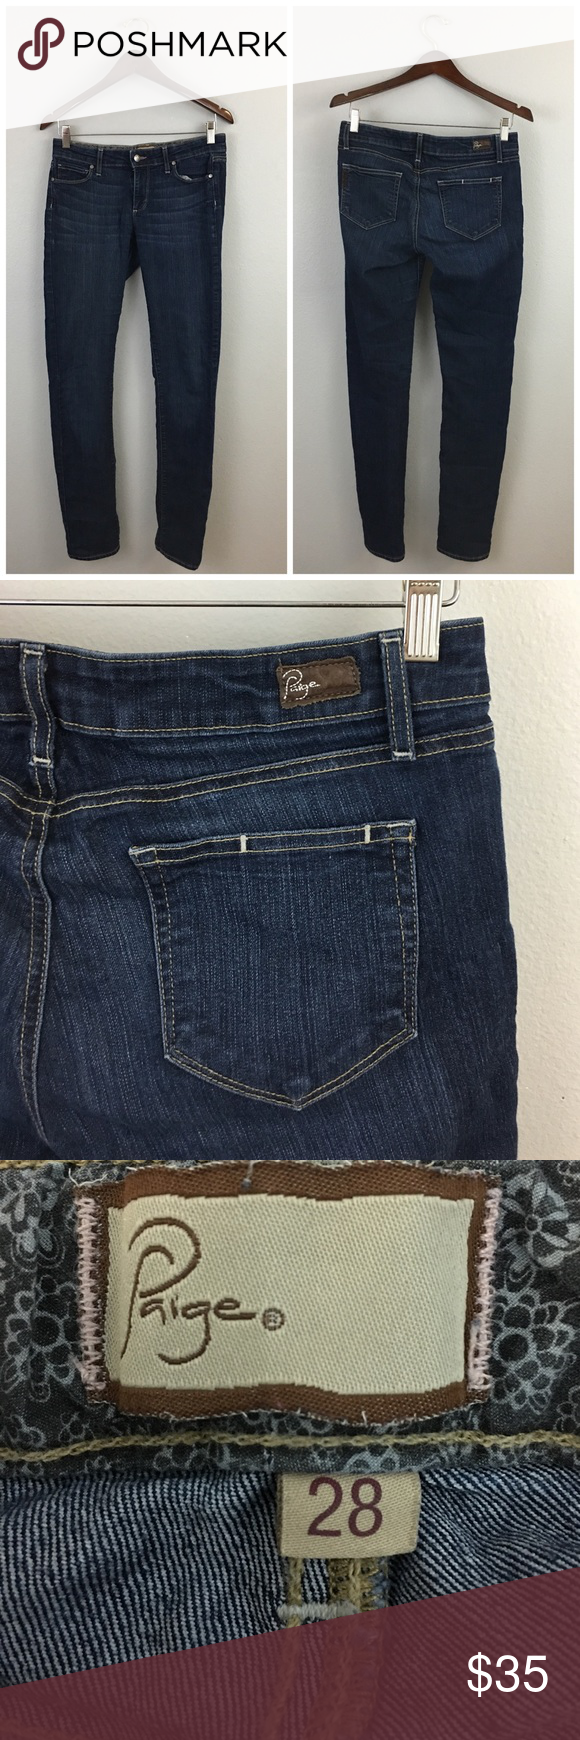 """Paige Peg Skinny Dark Medium Wash Jeans Paige Peg Skinny Dark Medium Wash Jeans. Size 28 with stretch. Thank you for looking at my listing. Please feel free to comment with any questions (no trades/modeling).  •Length: 29"""" Inseam  •Condition: Very good! No visible flaws.   ✨Bundle and save!✨10% off 2 items, 20% off 3 items & 30% off 5+ items! IC Paige Jeans Jeans Skinny"""